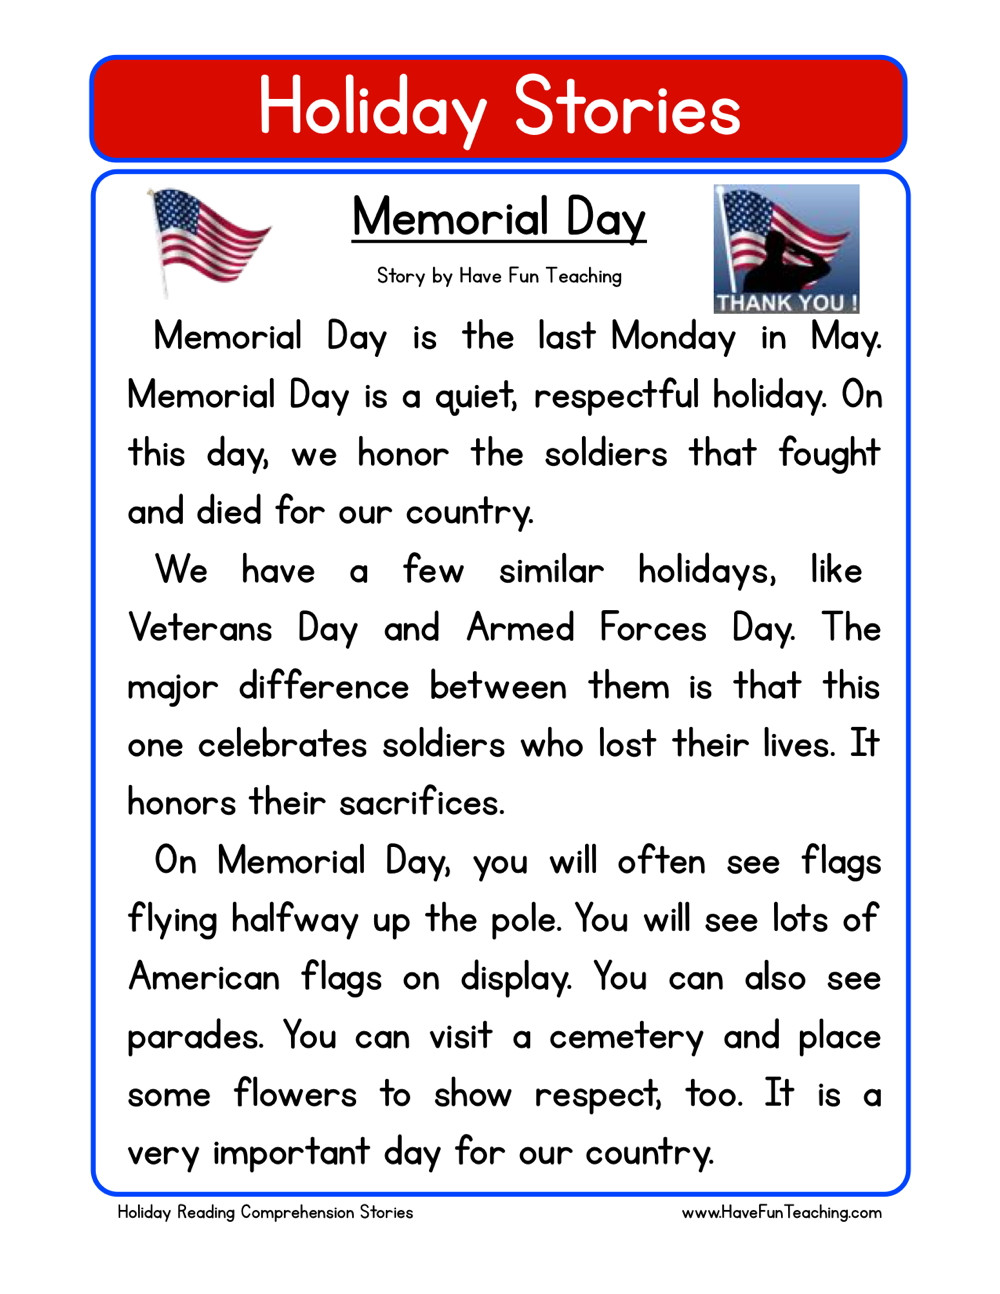 Holiday Reading Comprehension Worksheets Free Memorial Day Reading Prehension Worksheet